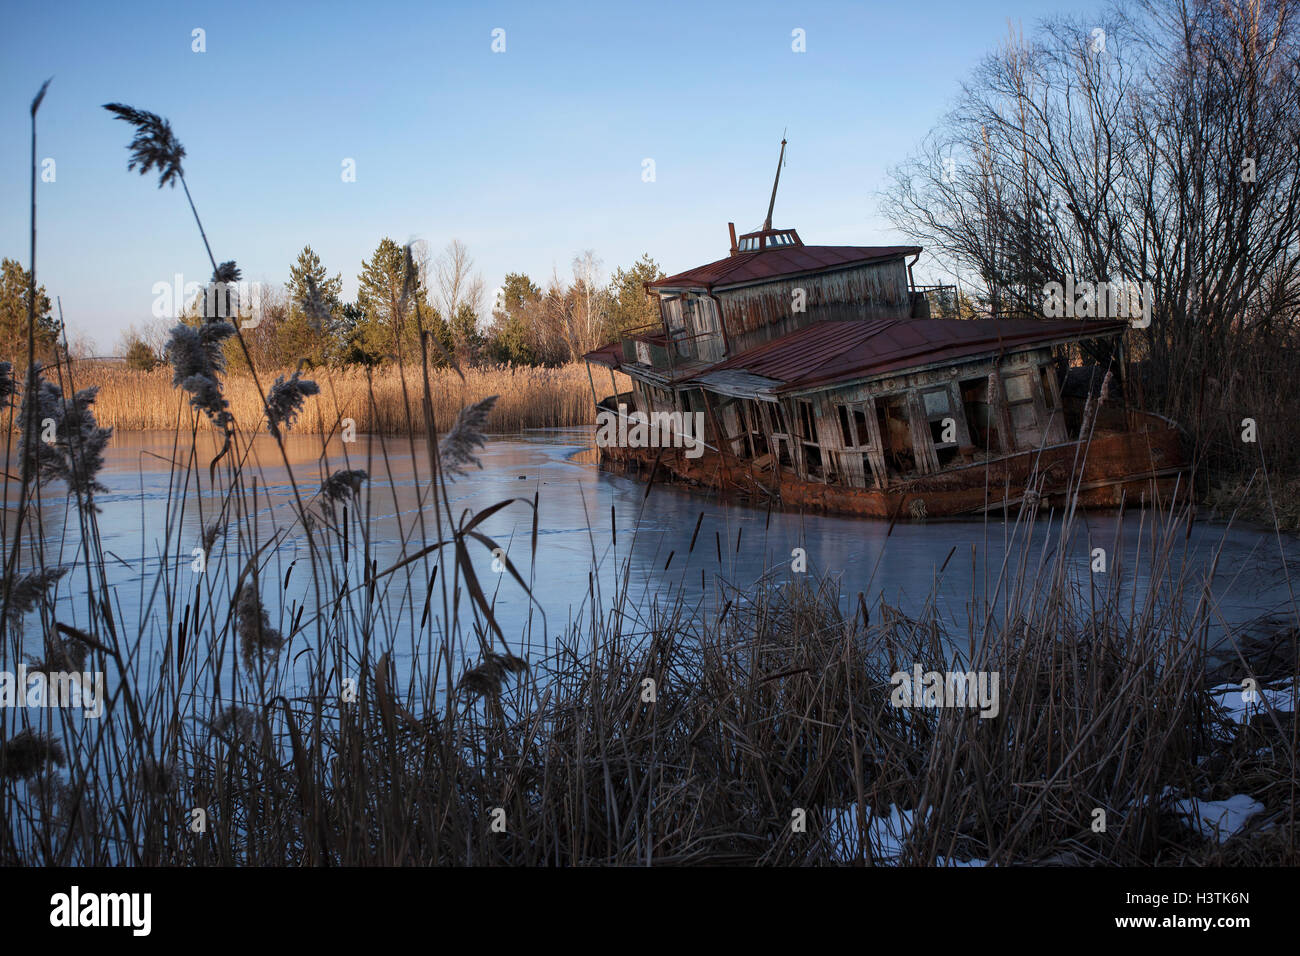 Abandoned shipwreck on the banks of the Pripyat River after the Chernobyl disaster. Pripyat, Chernobyl Exclusion - Stock Image